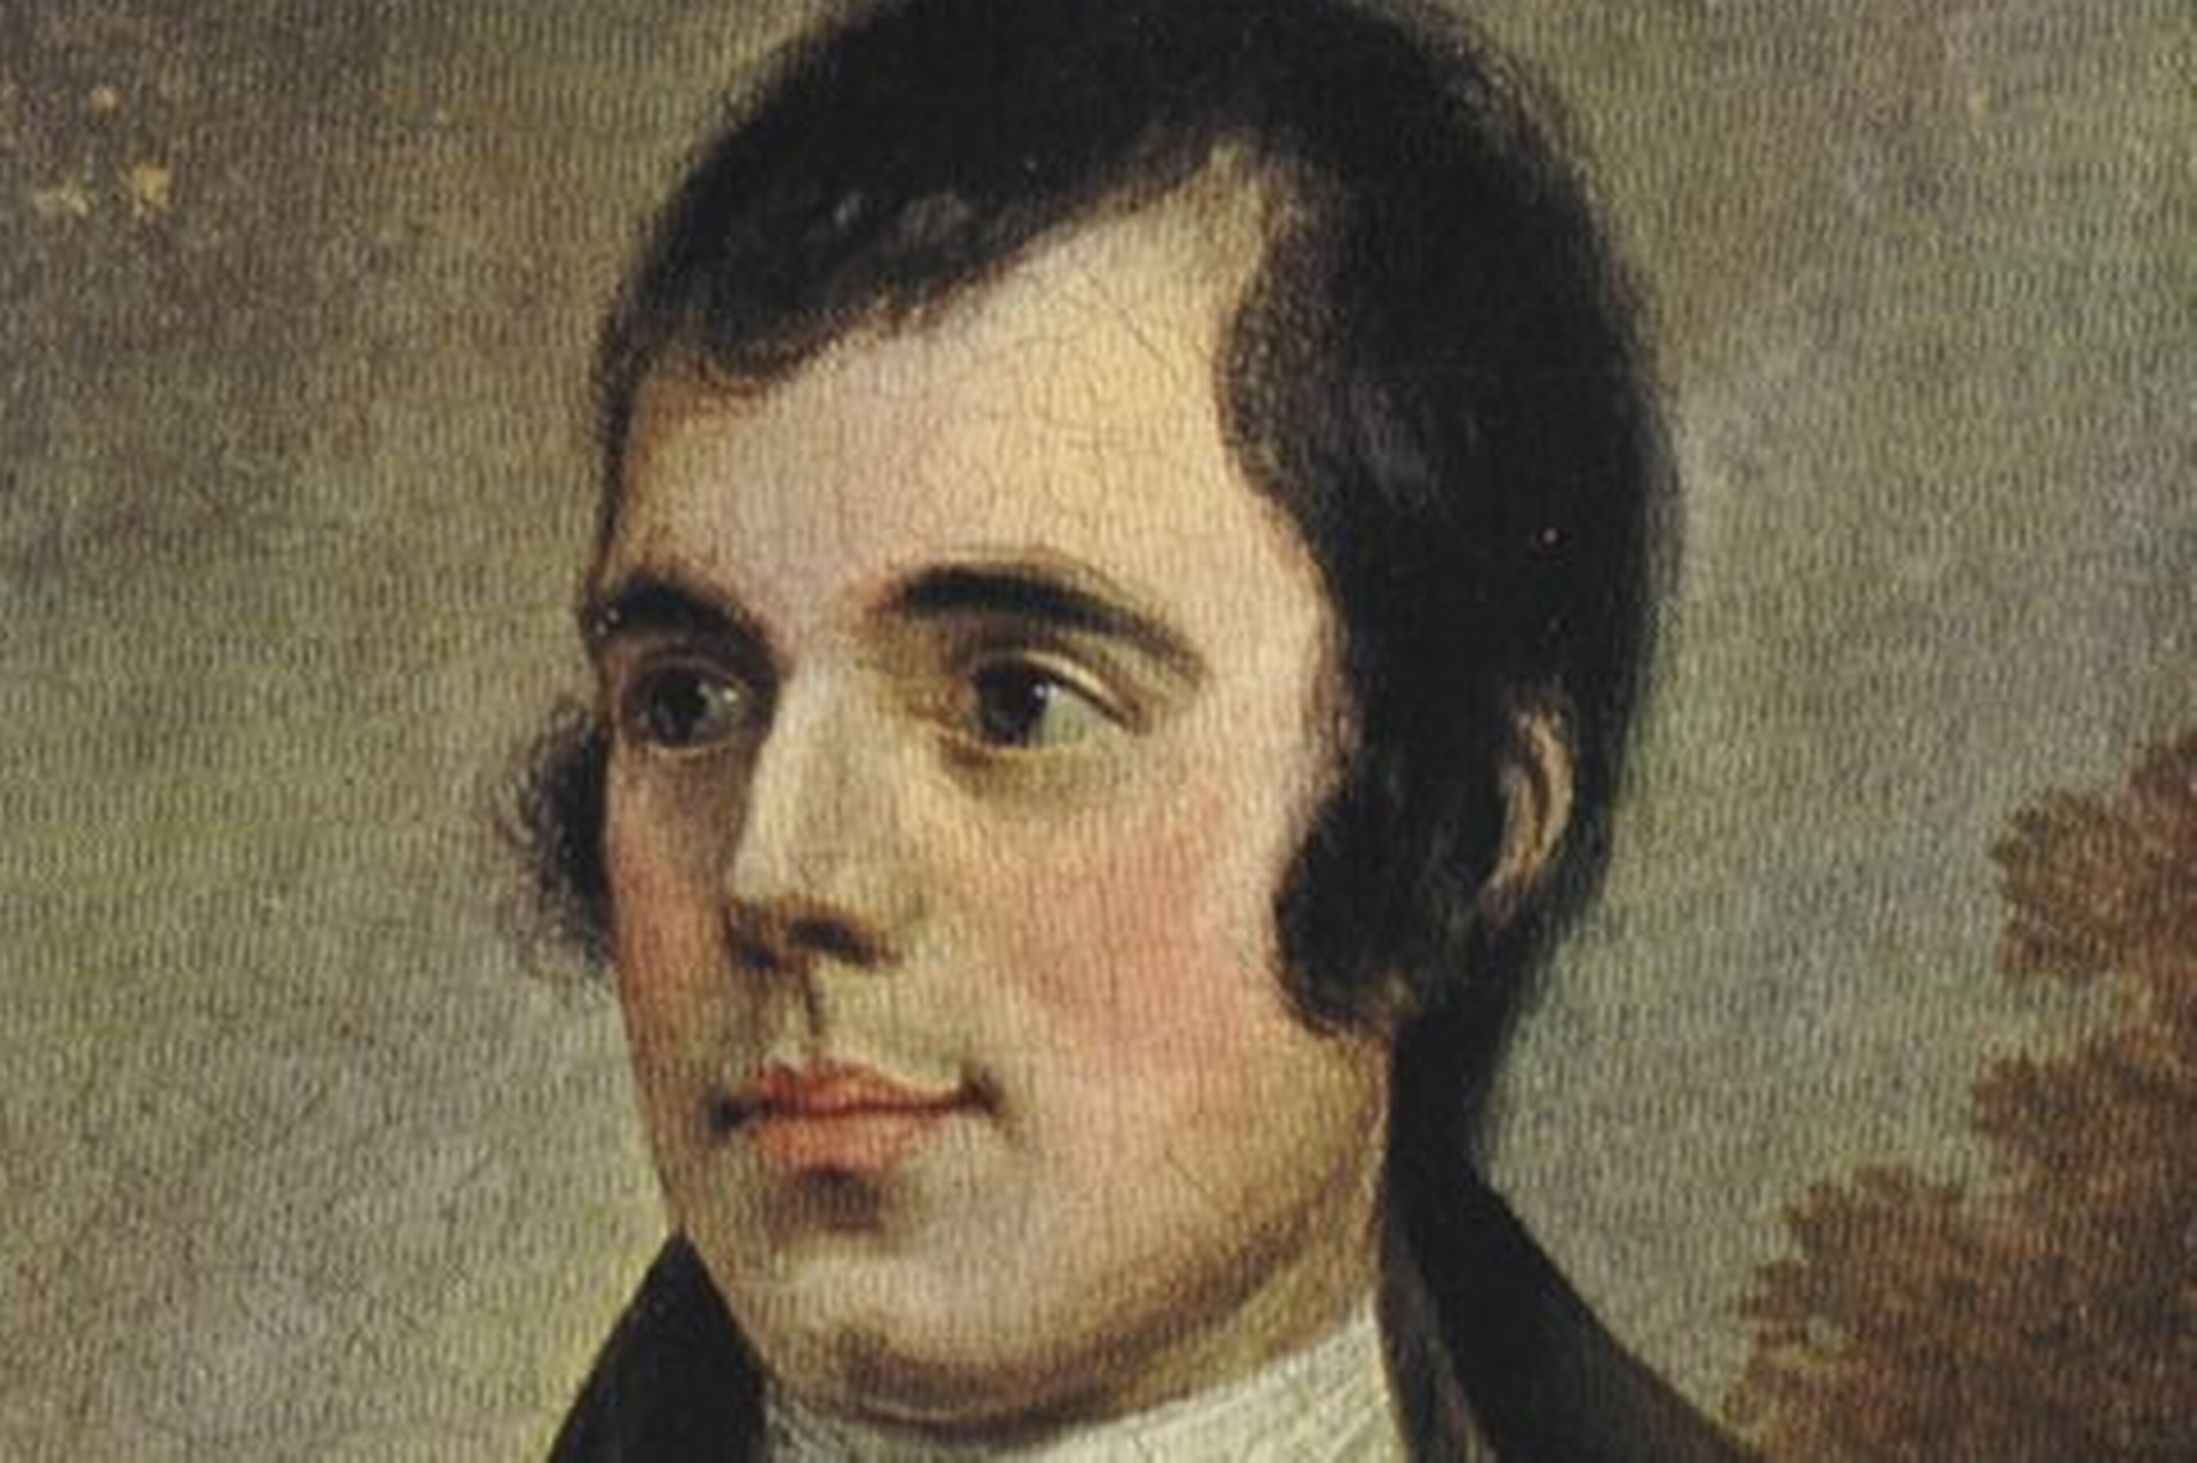 To a Louse Analysis by Robert Burns